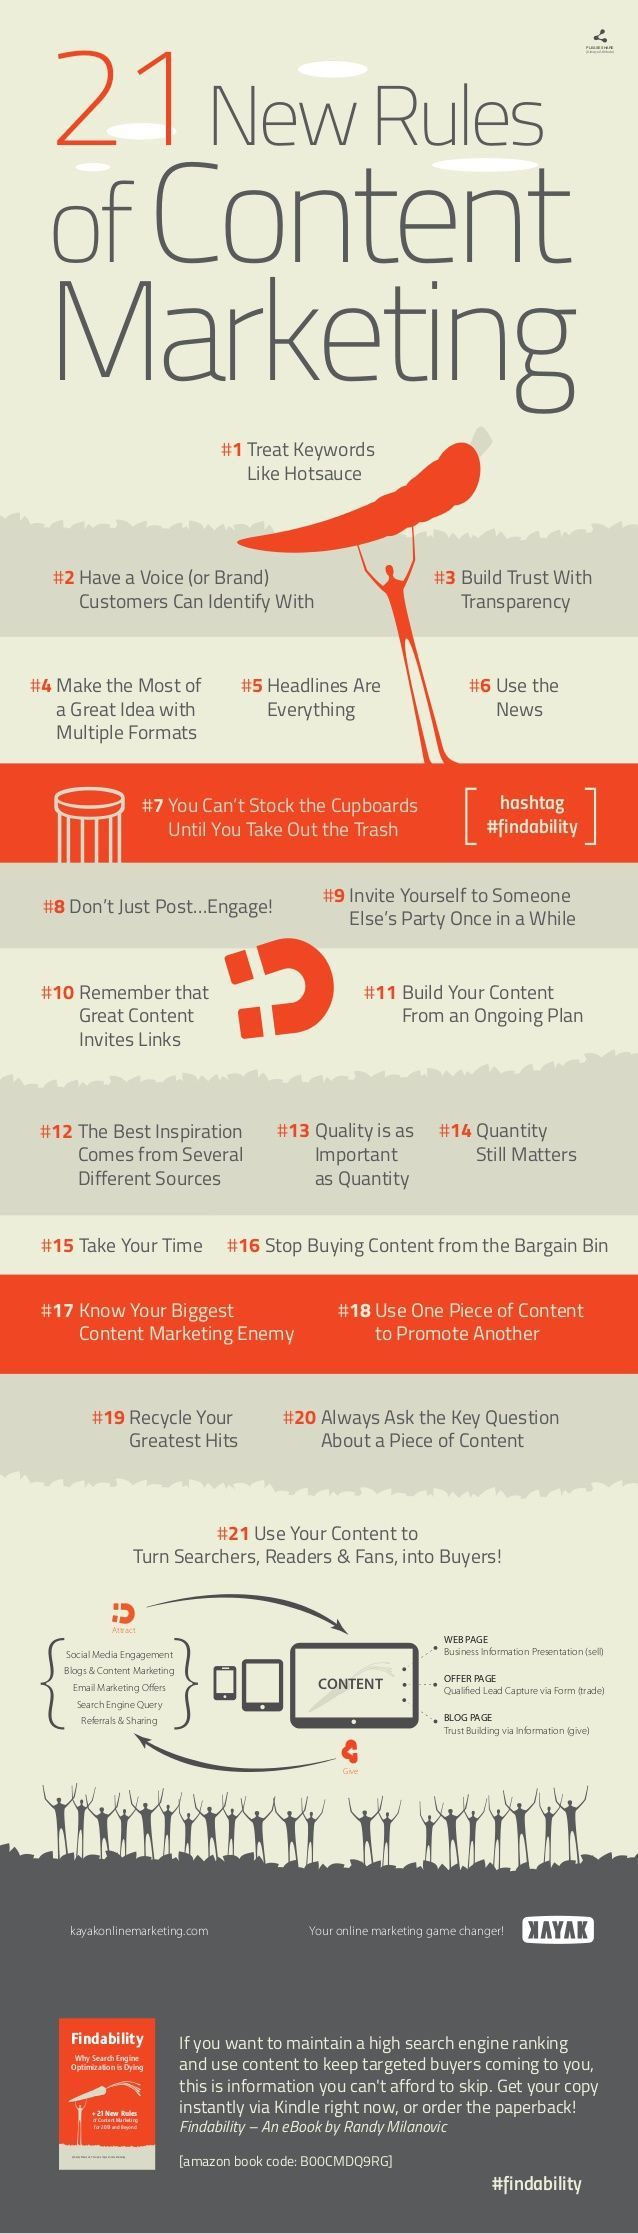 Content #marketing techniques for eCommerce. (Infographic) #smallbusiness